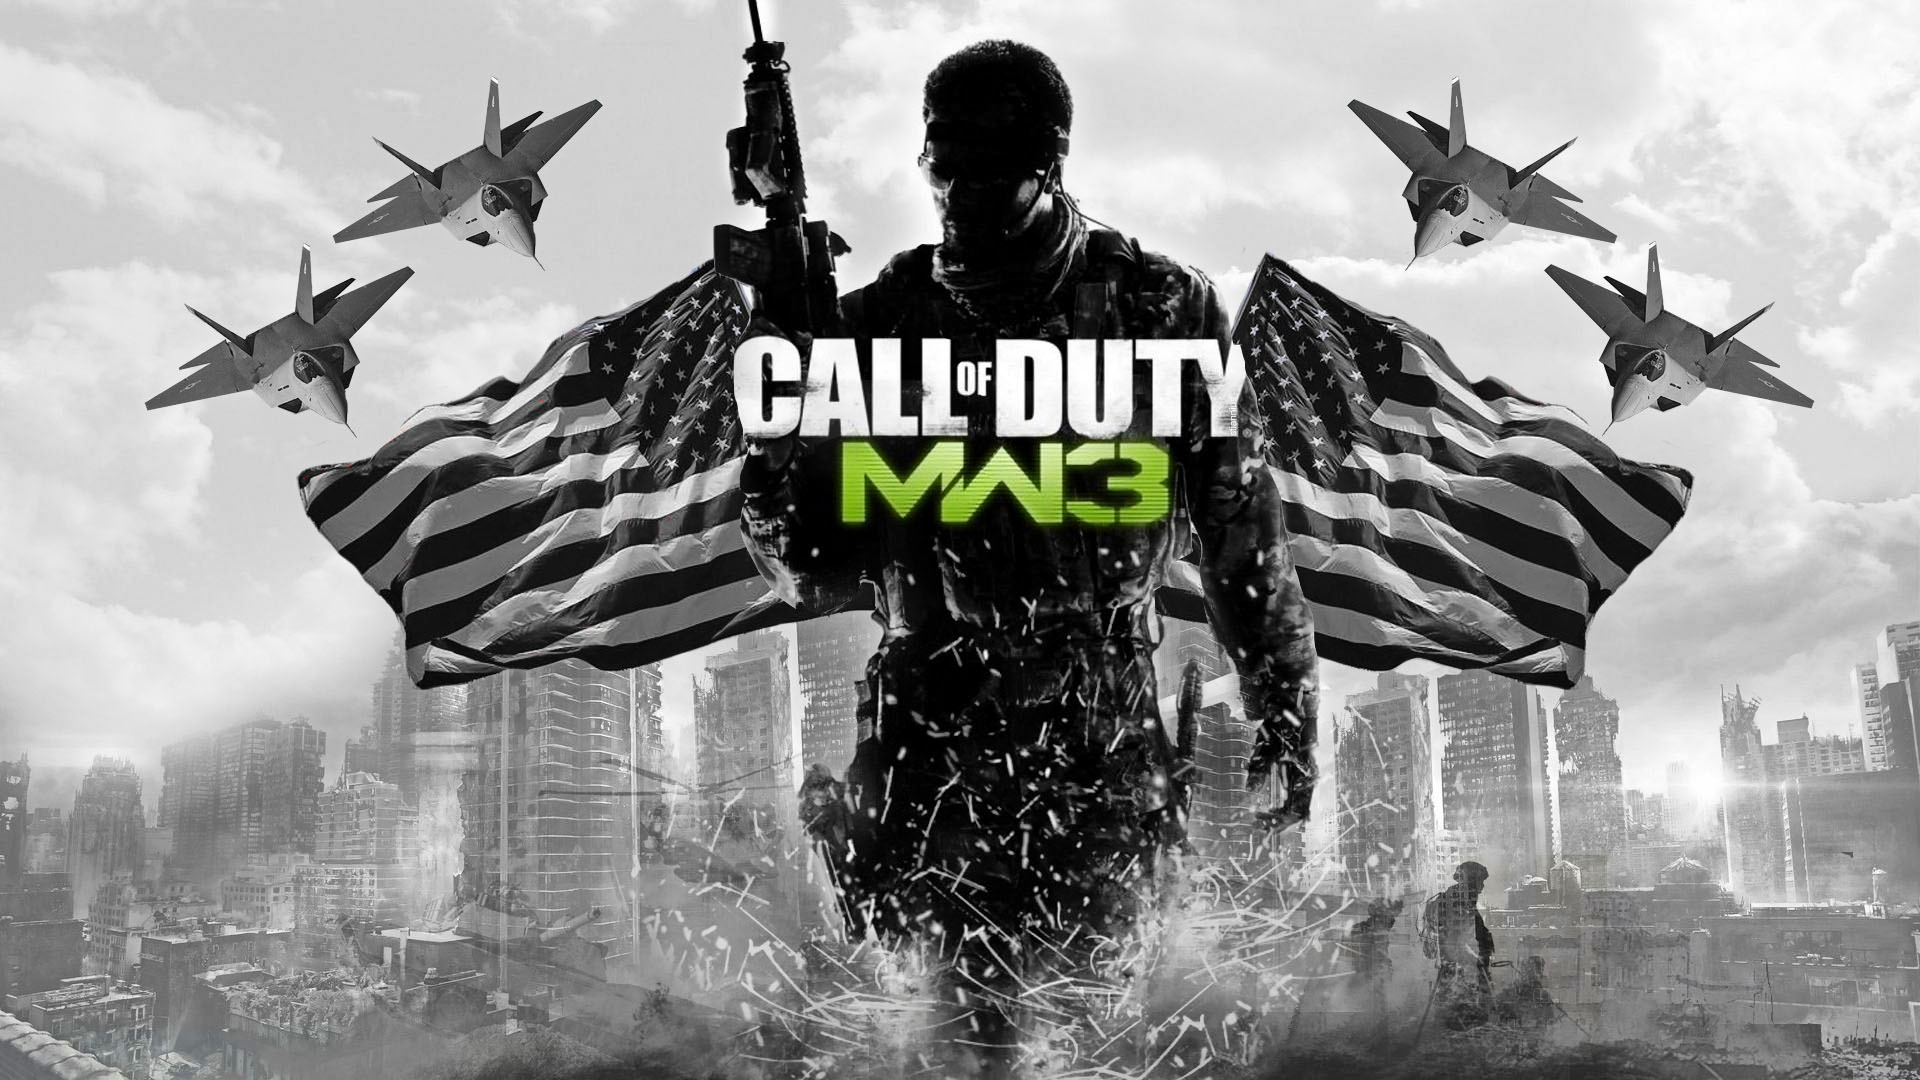 Call Of Duty Wallpaper Collection Call Of Duty 8 551743